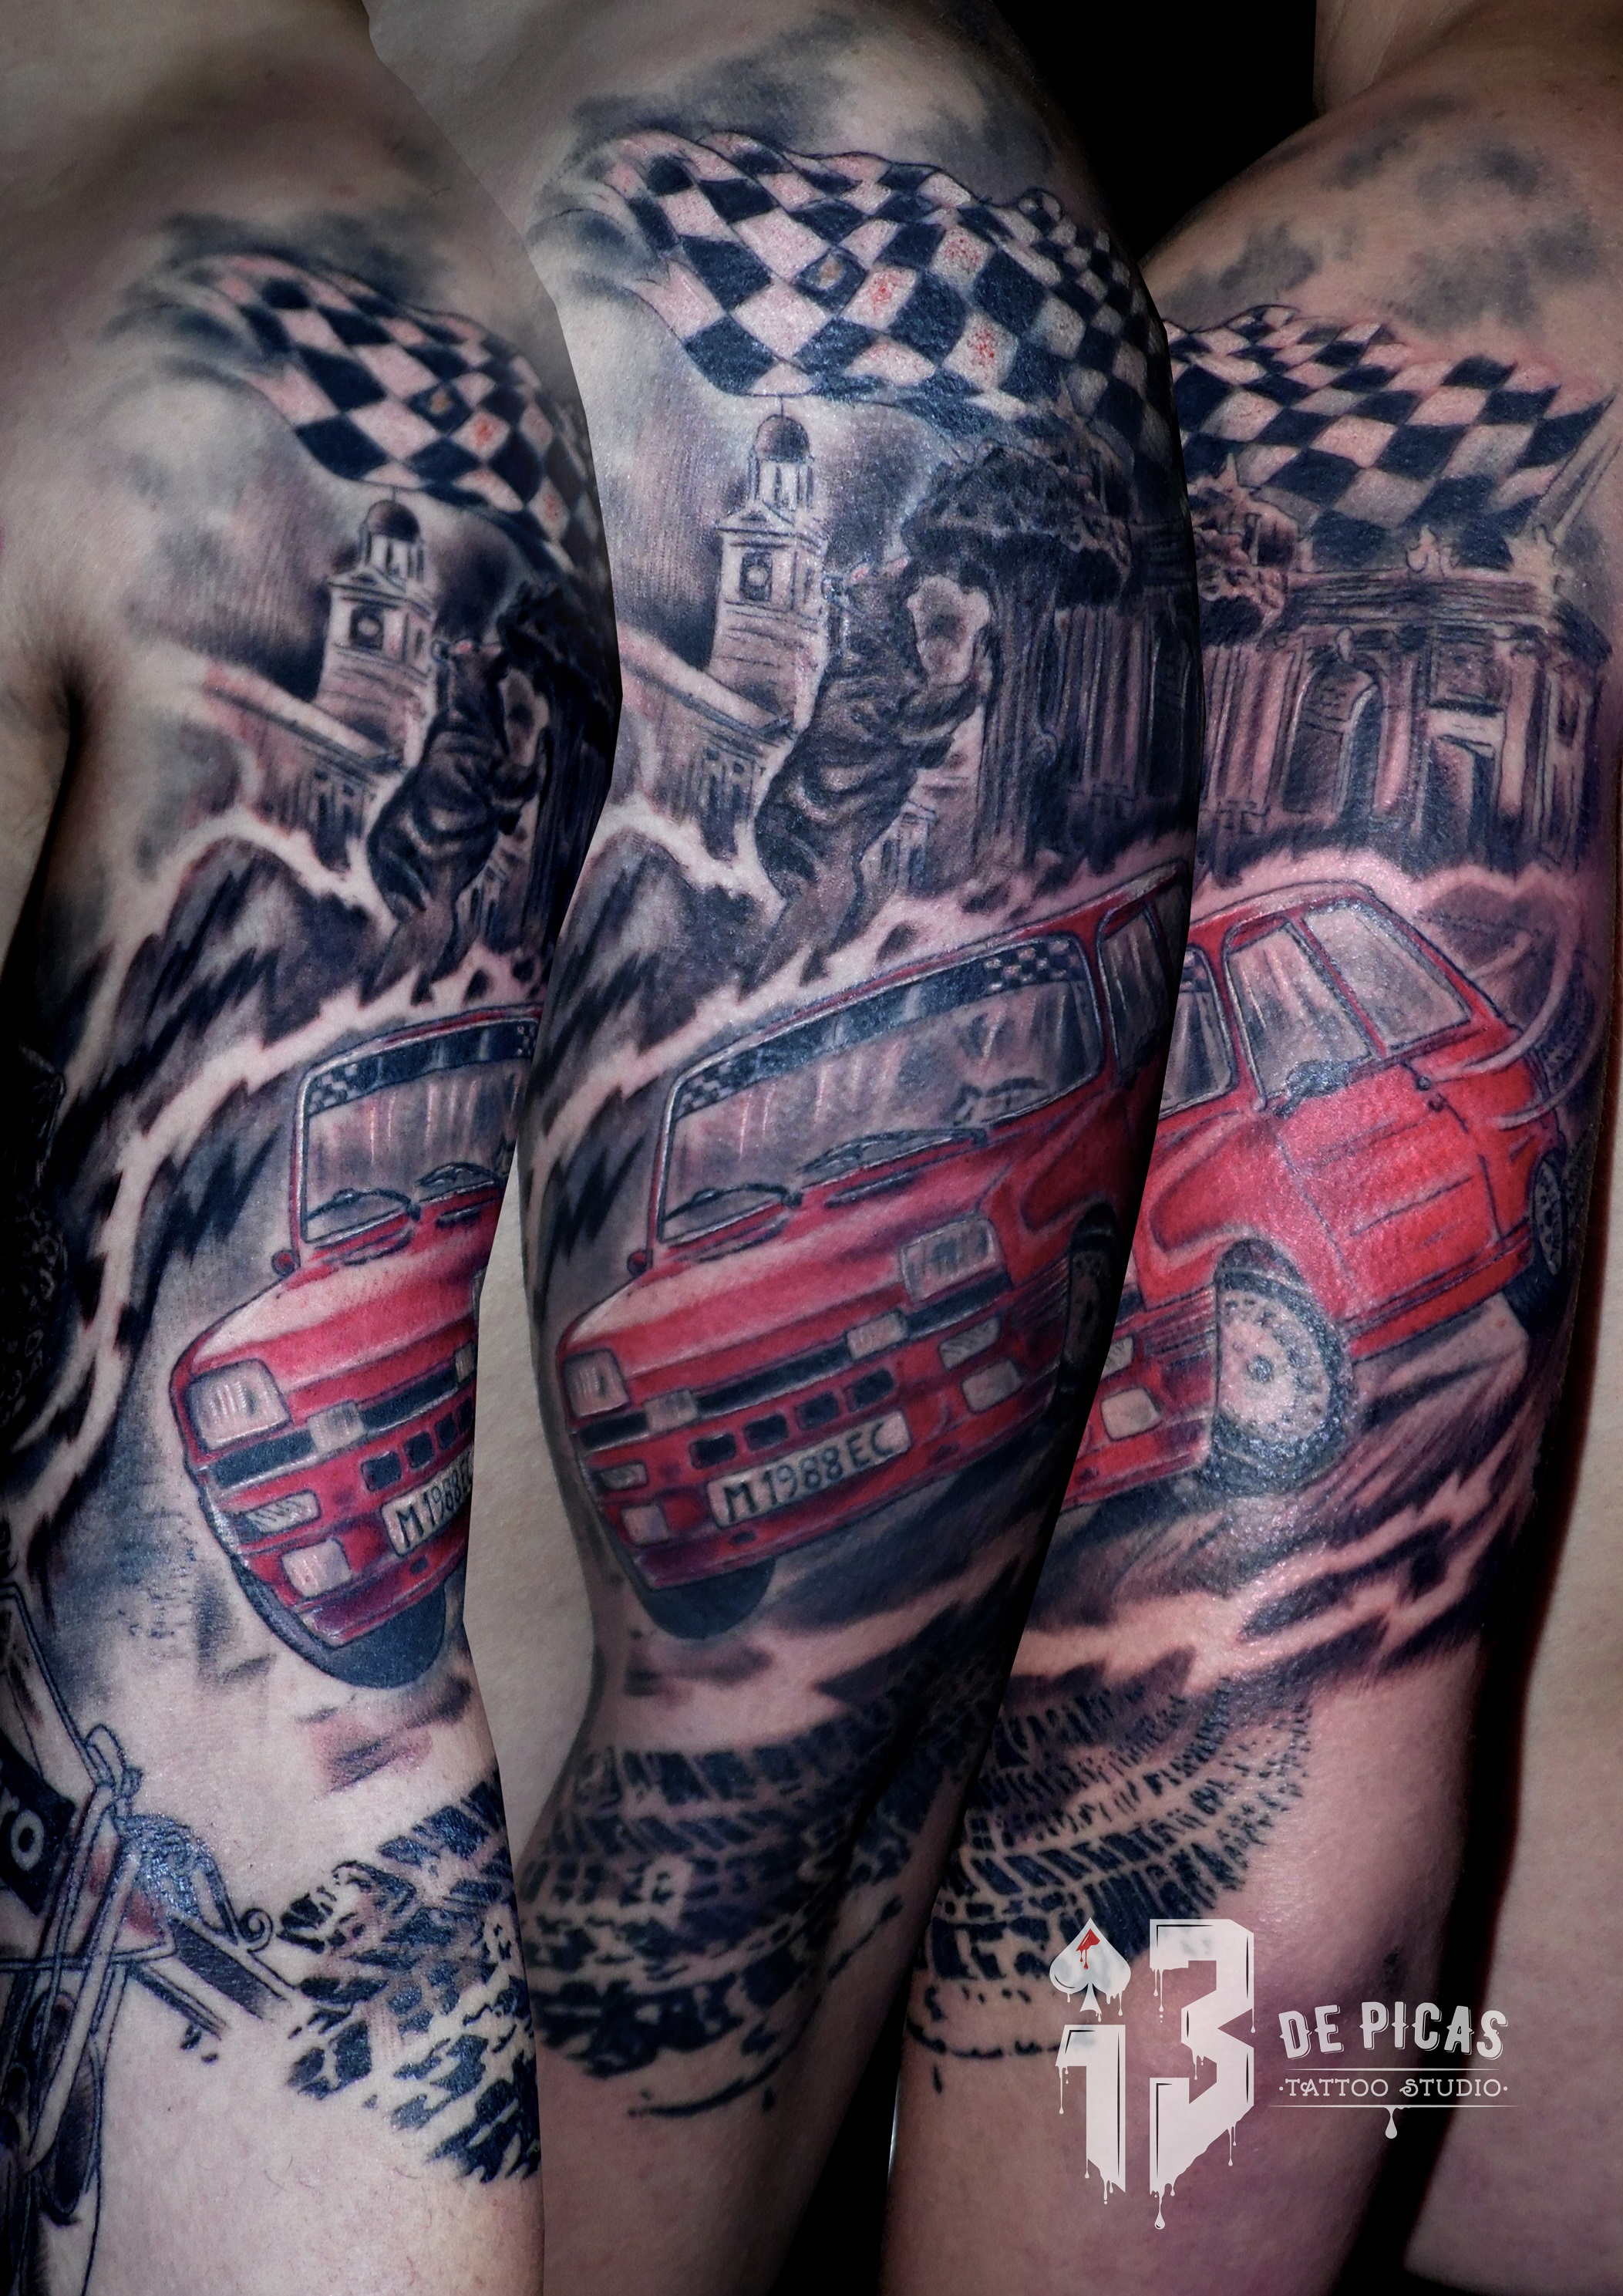 r5turbo tatuaje tattoo coche Madrid rallie oso madroño brazo hombro realista 13depicas jaca huesca color